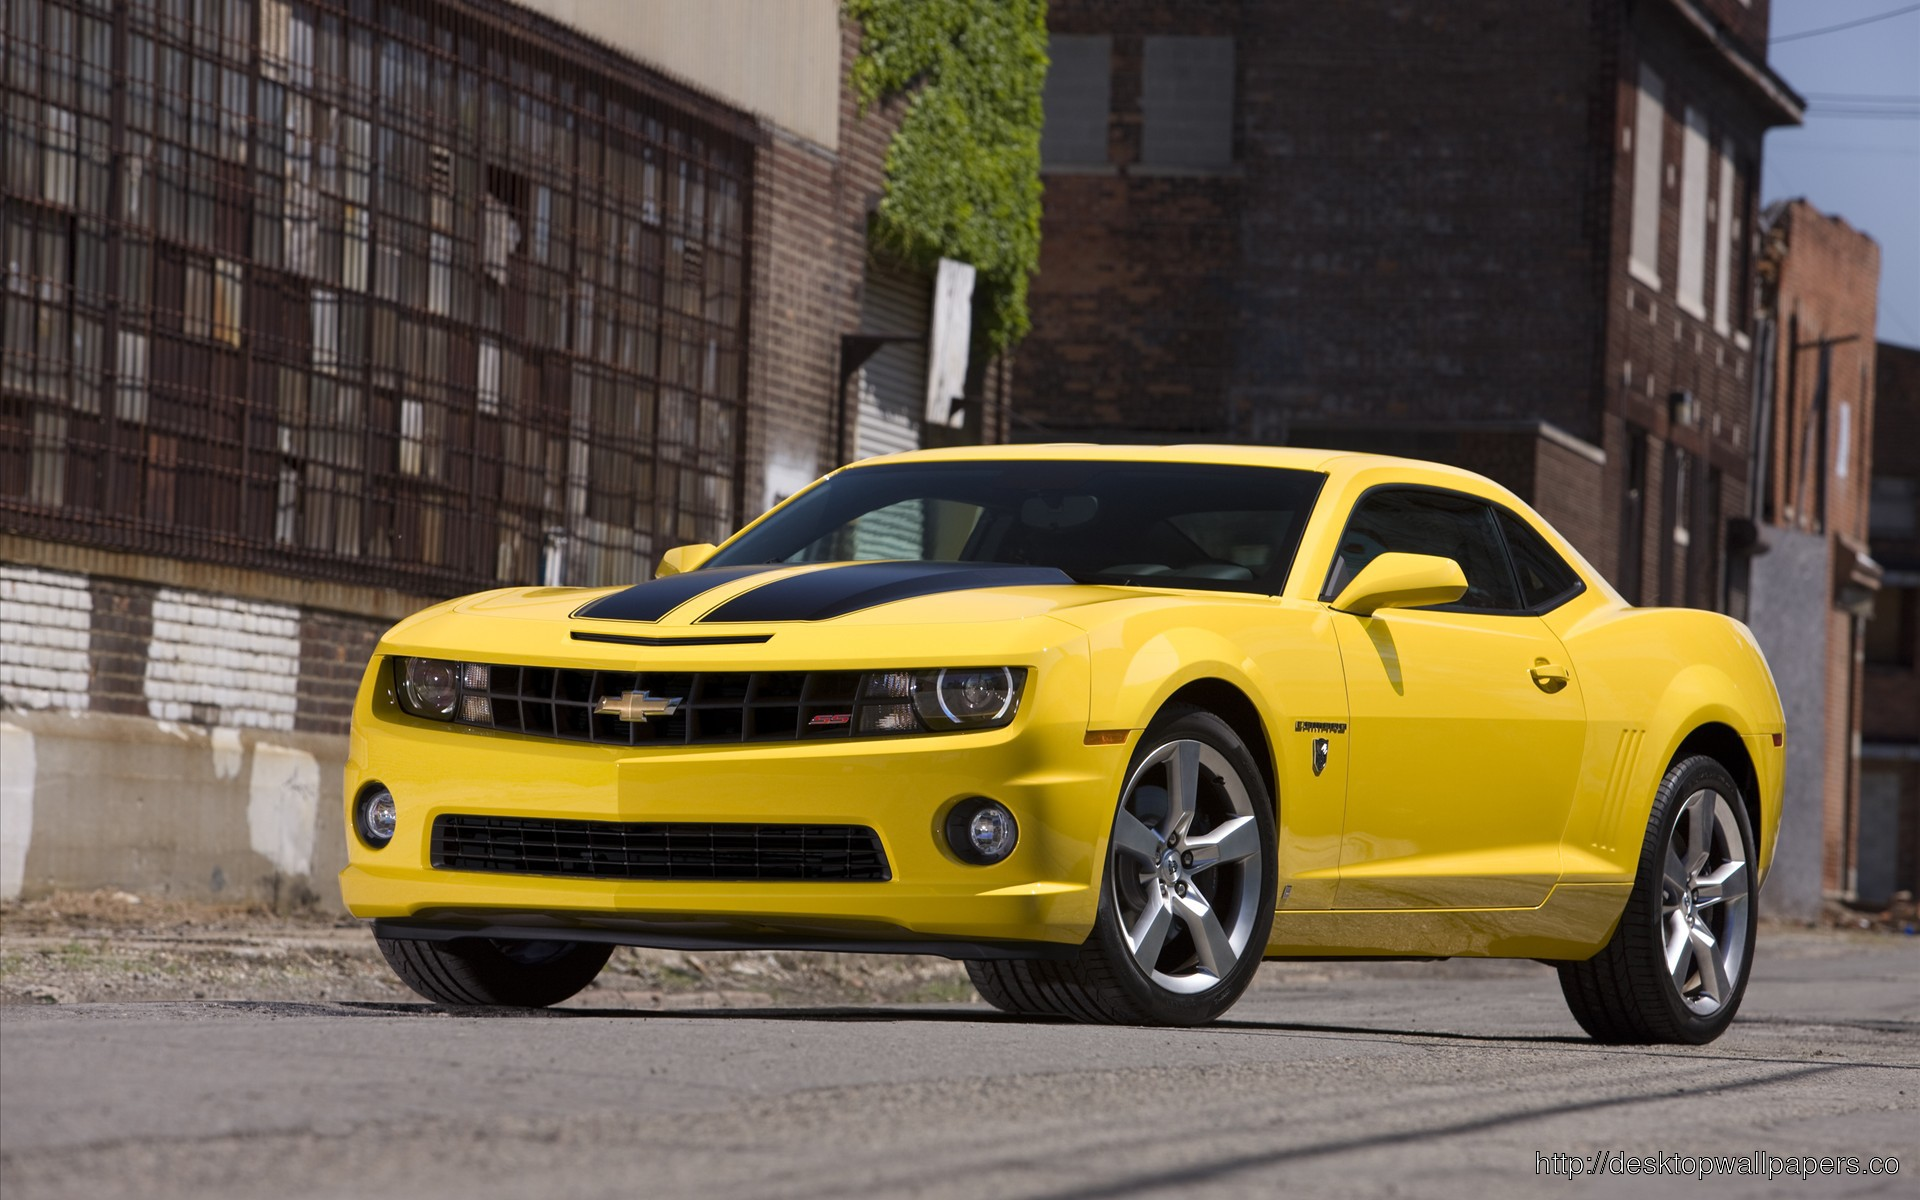 Chevrolet Camaro Trasformers WallpaperDesktop Wallpapers Download 1920x1200